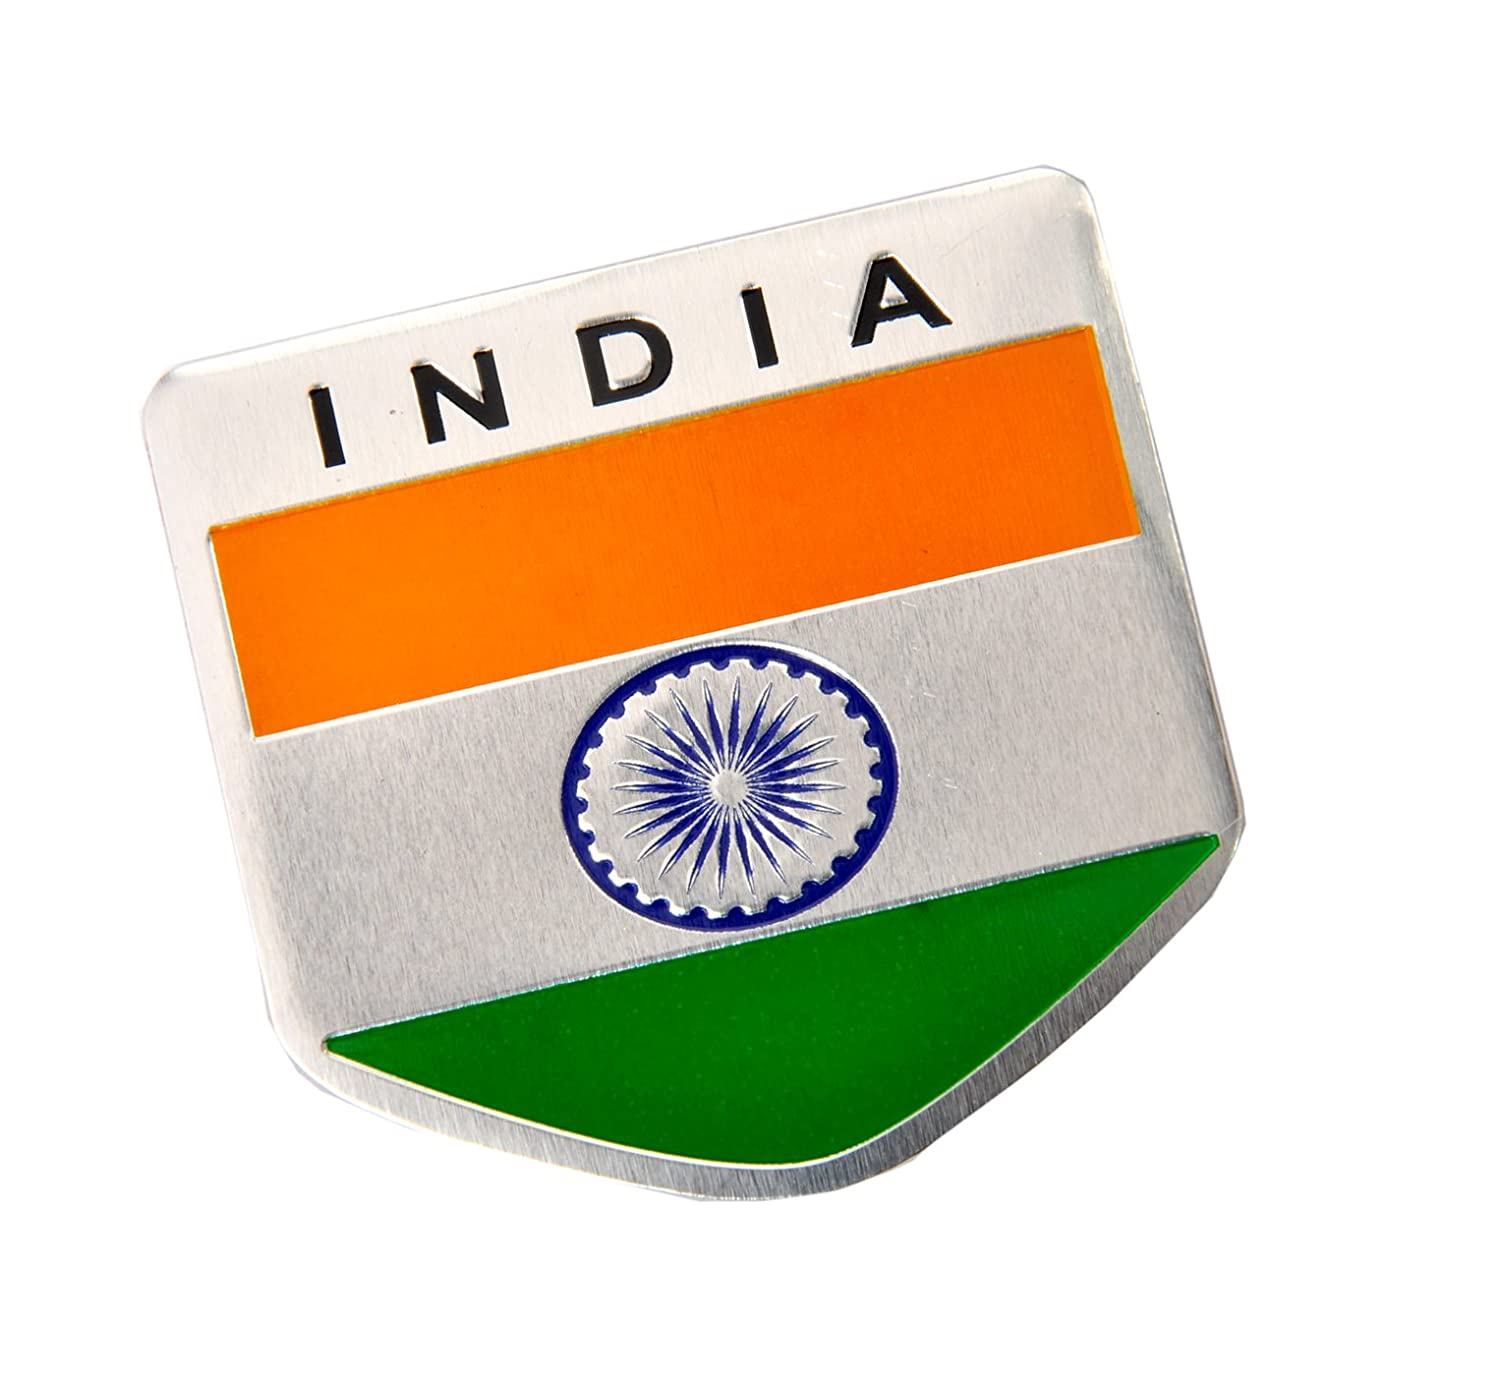 S2s india flag 3d chrome aluminium metal sticker emblem badge logo for car bike 12 x 10 x 1 cm amazon in car motorbike